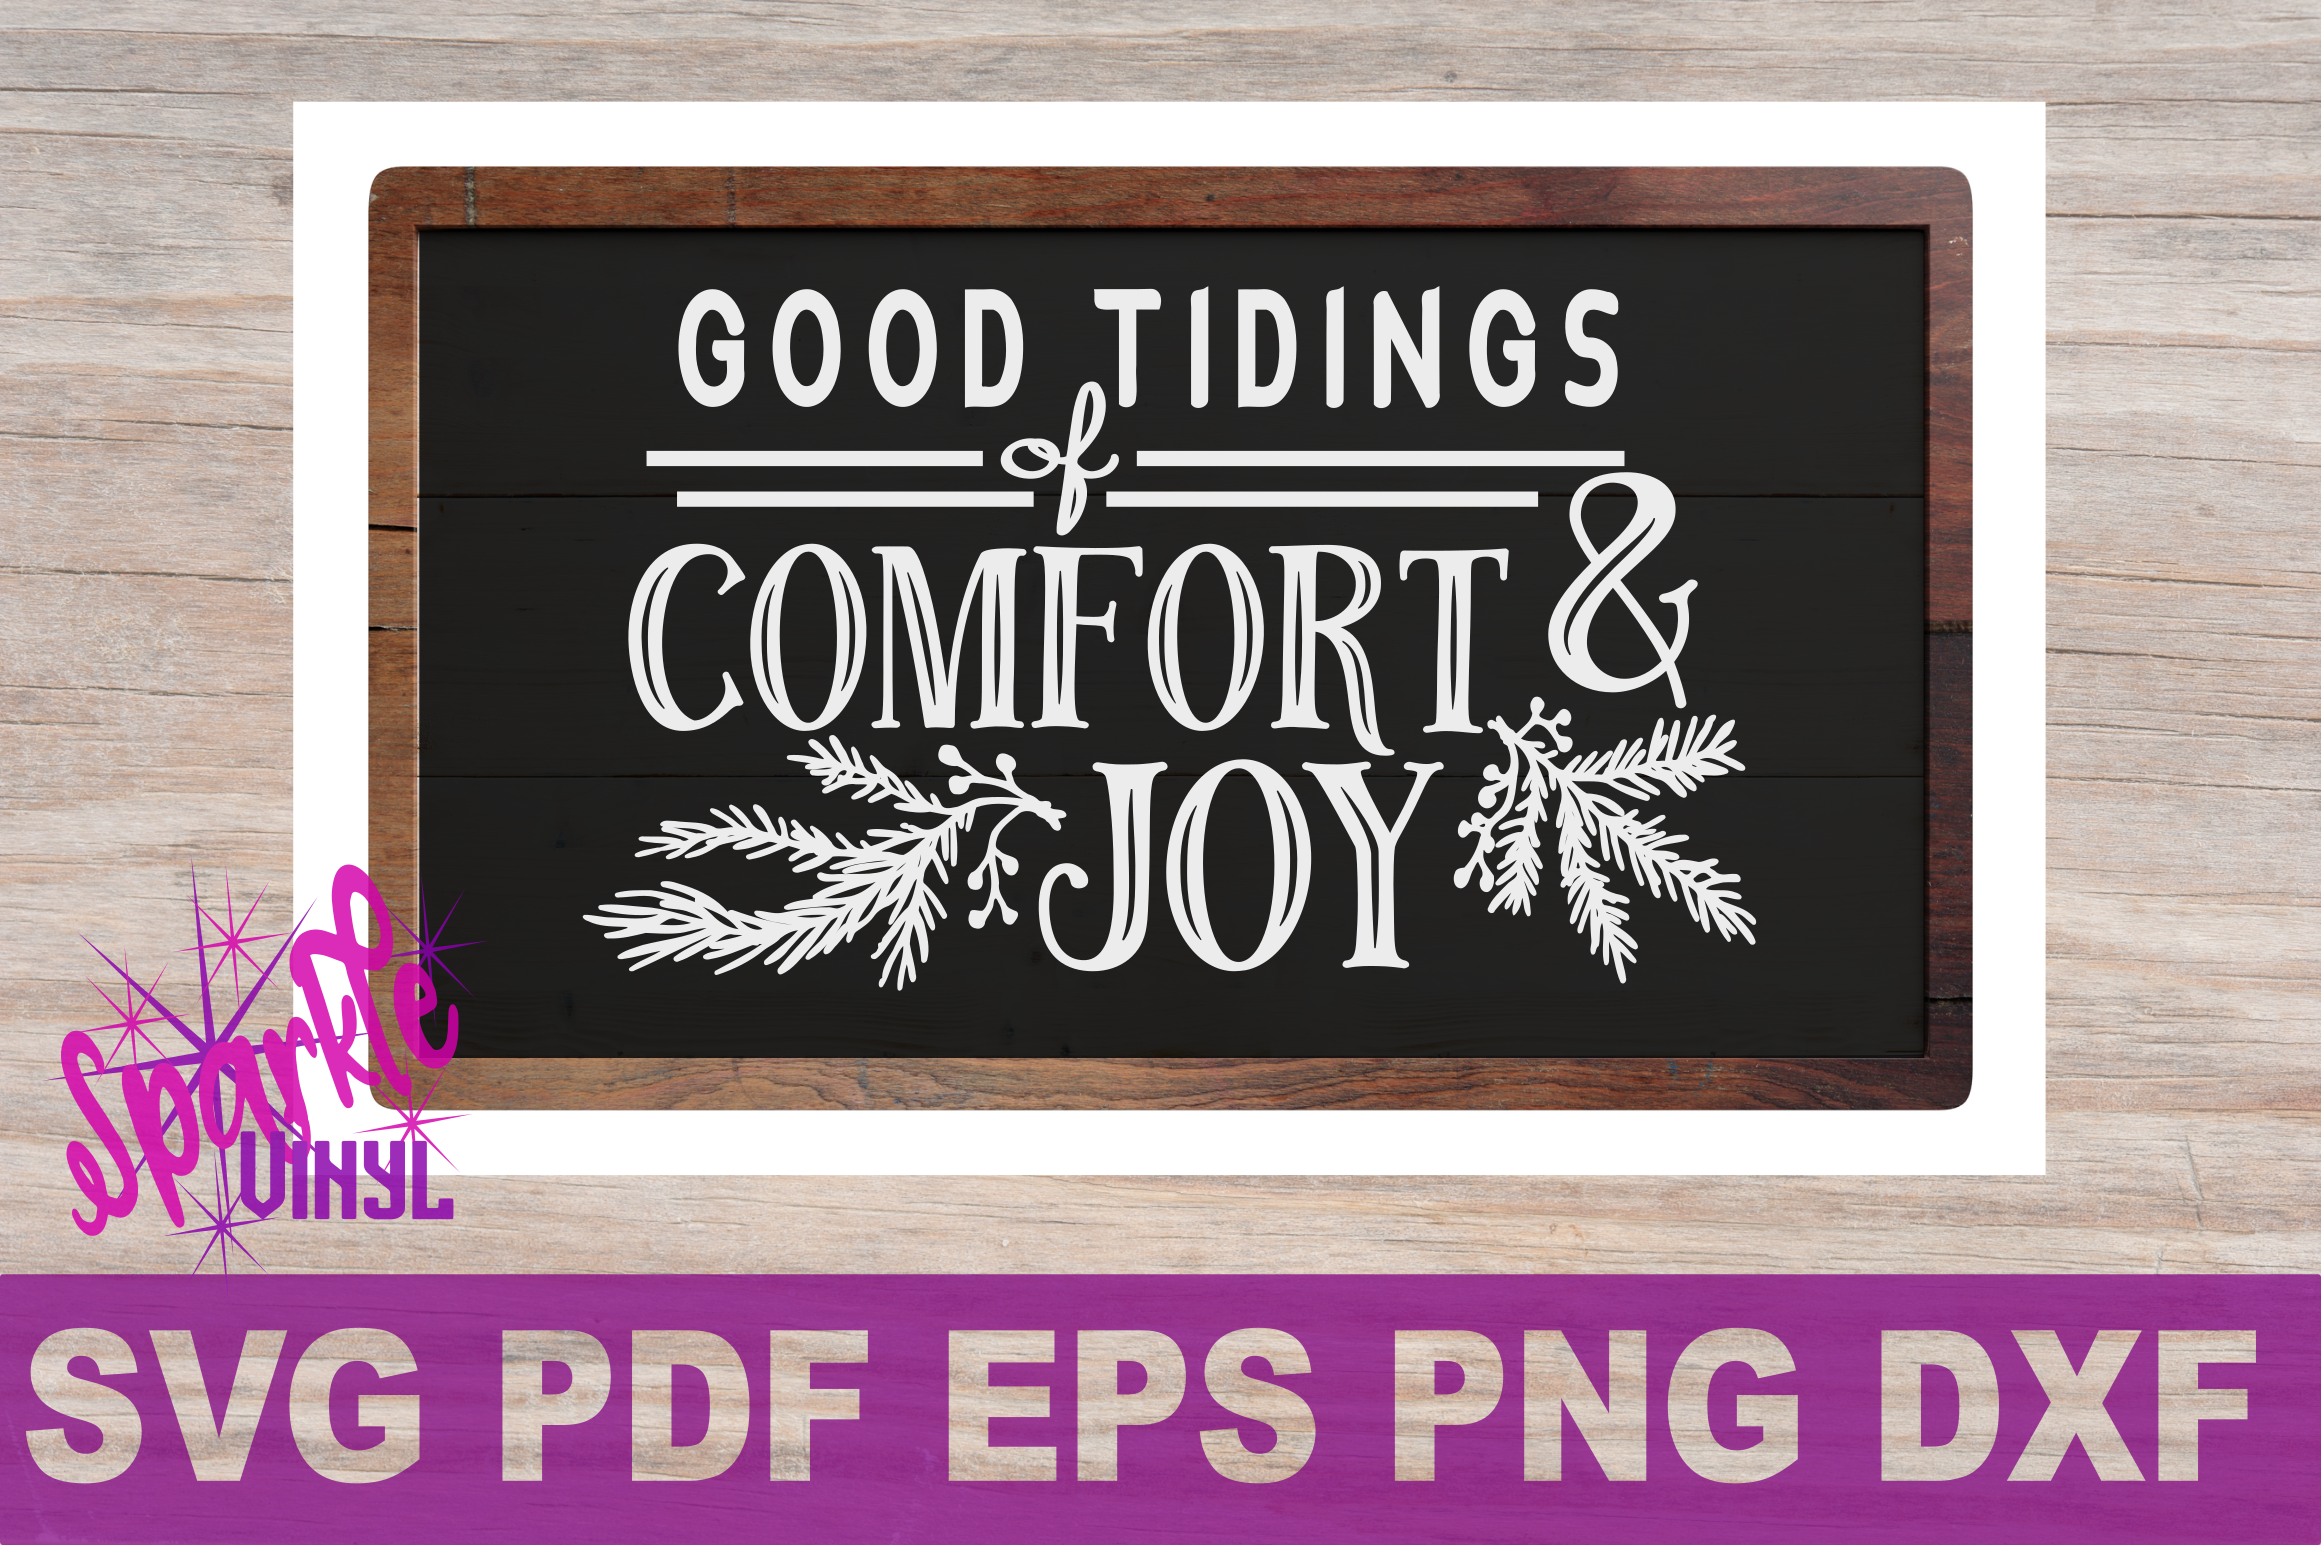 SVG Christmas Comfort and Joy DIY Sign stencil farmhouse example image 2